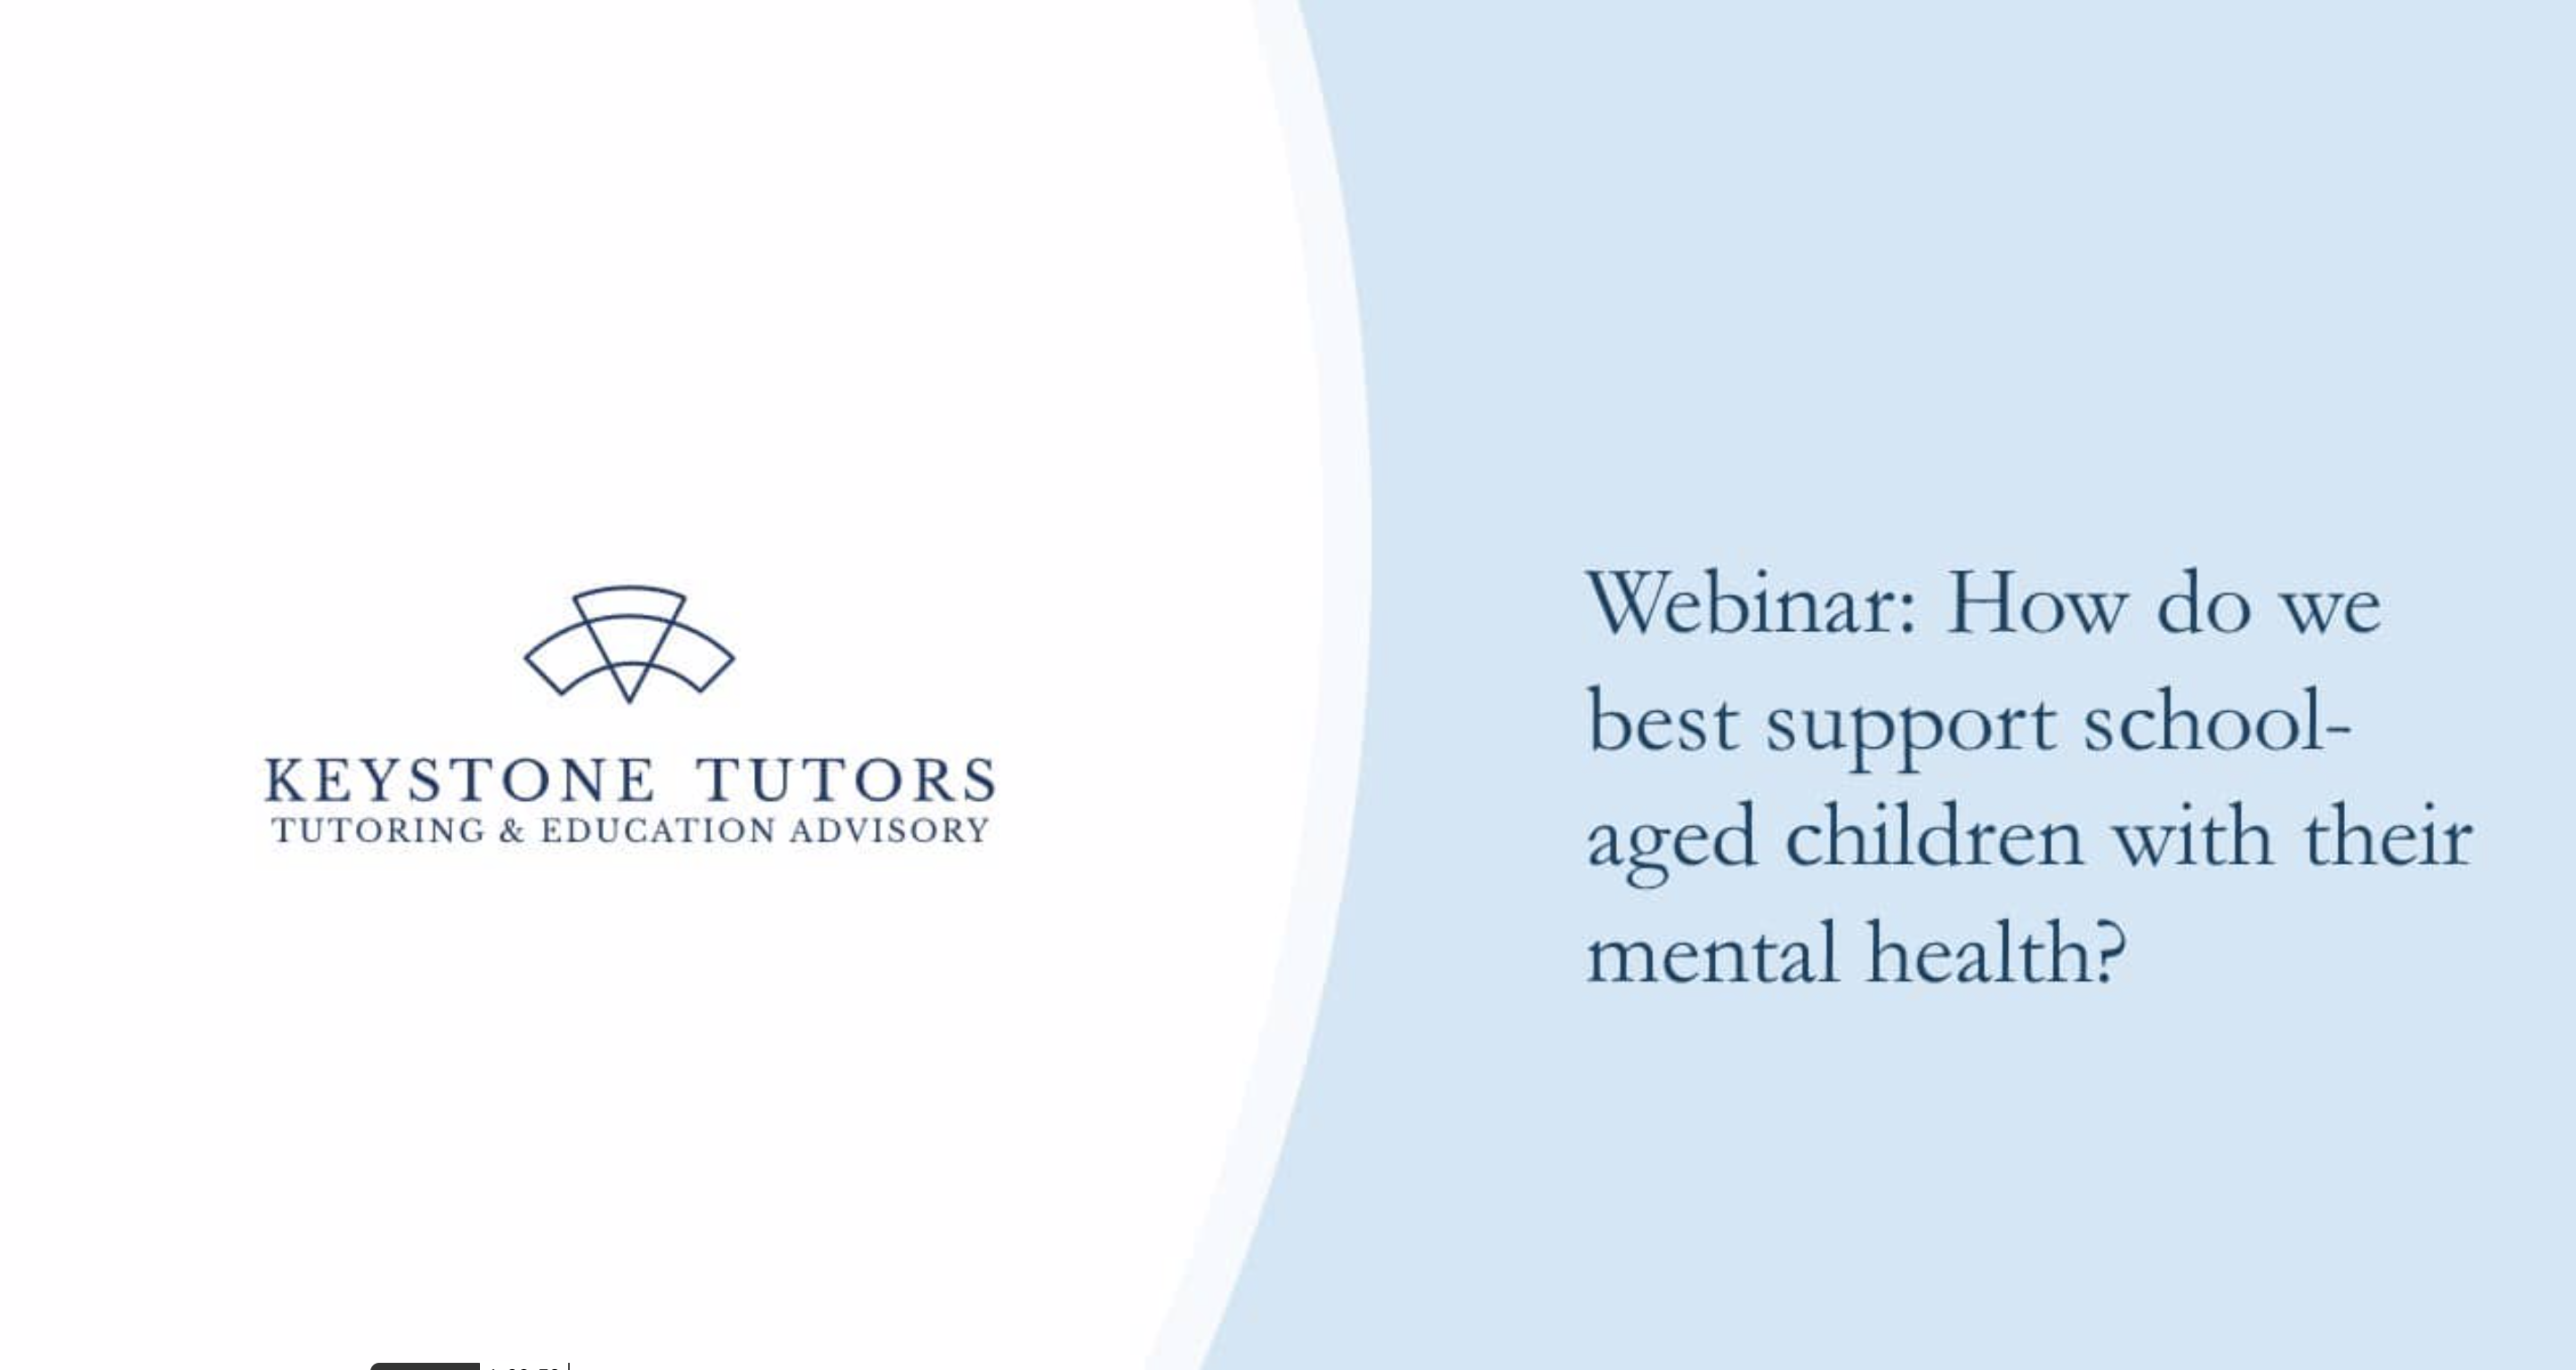 How do we best support school-aged children with their mental health? (Webinar)